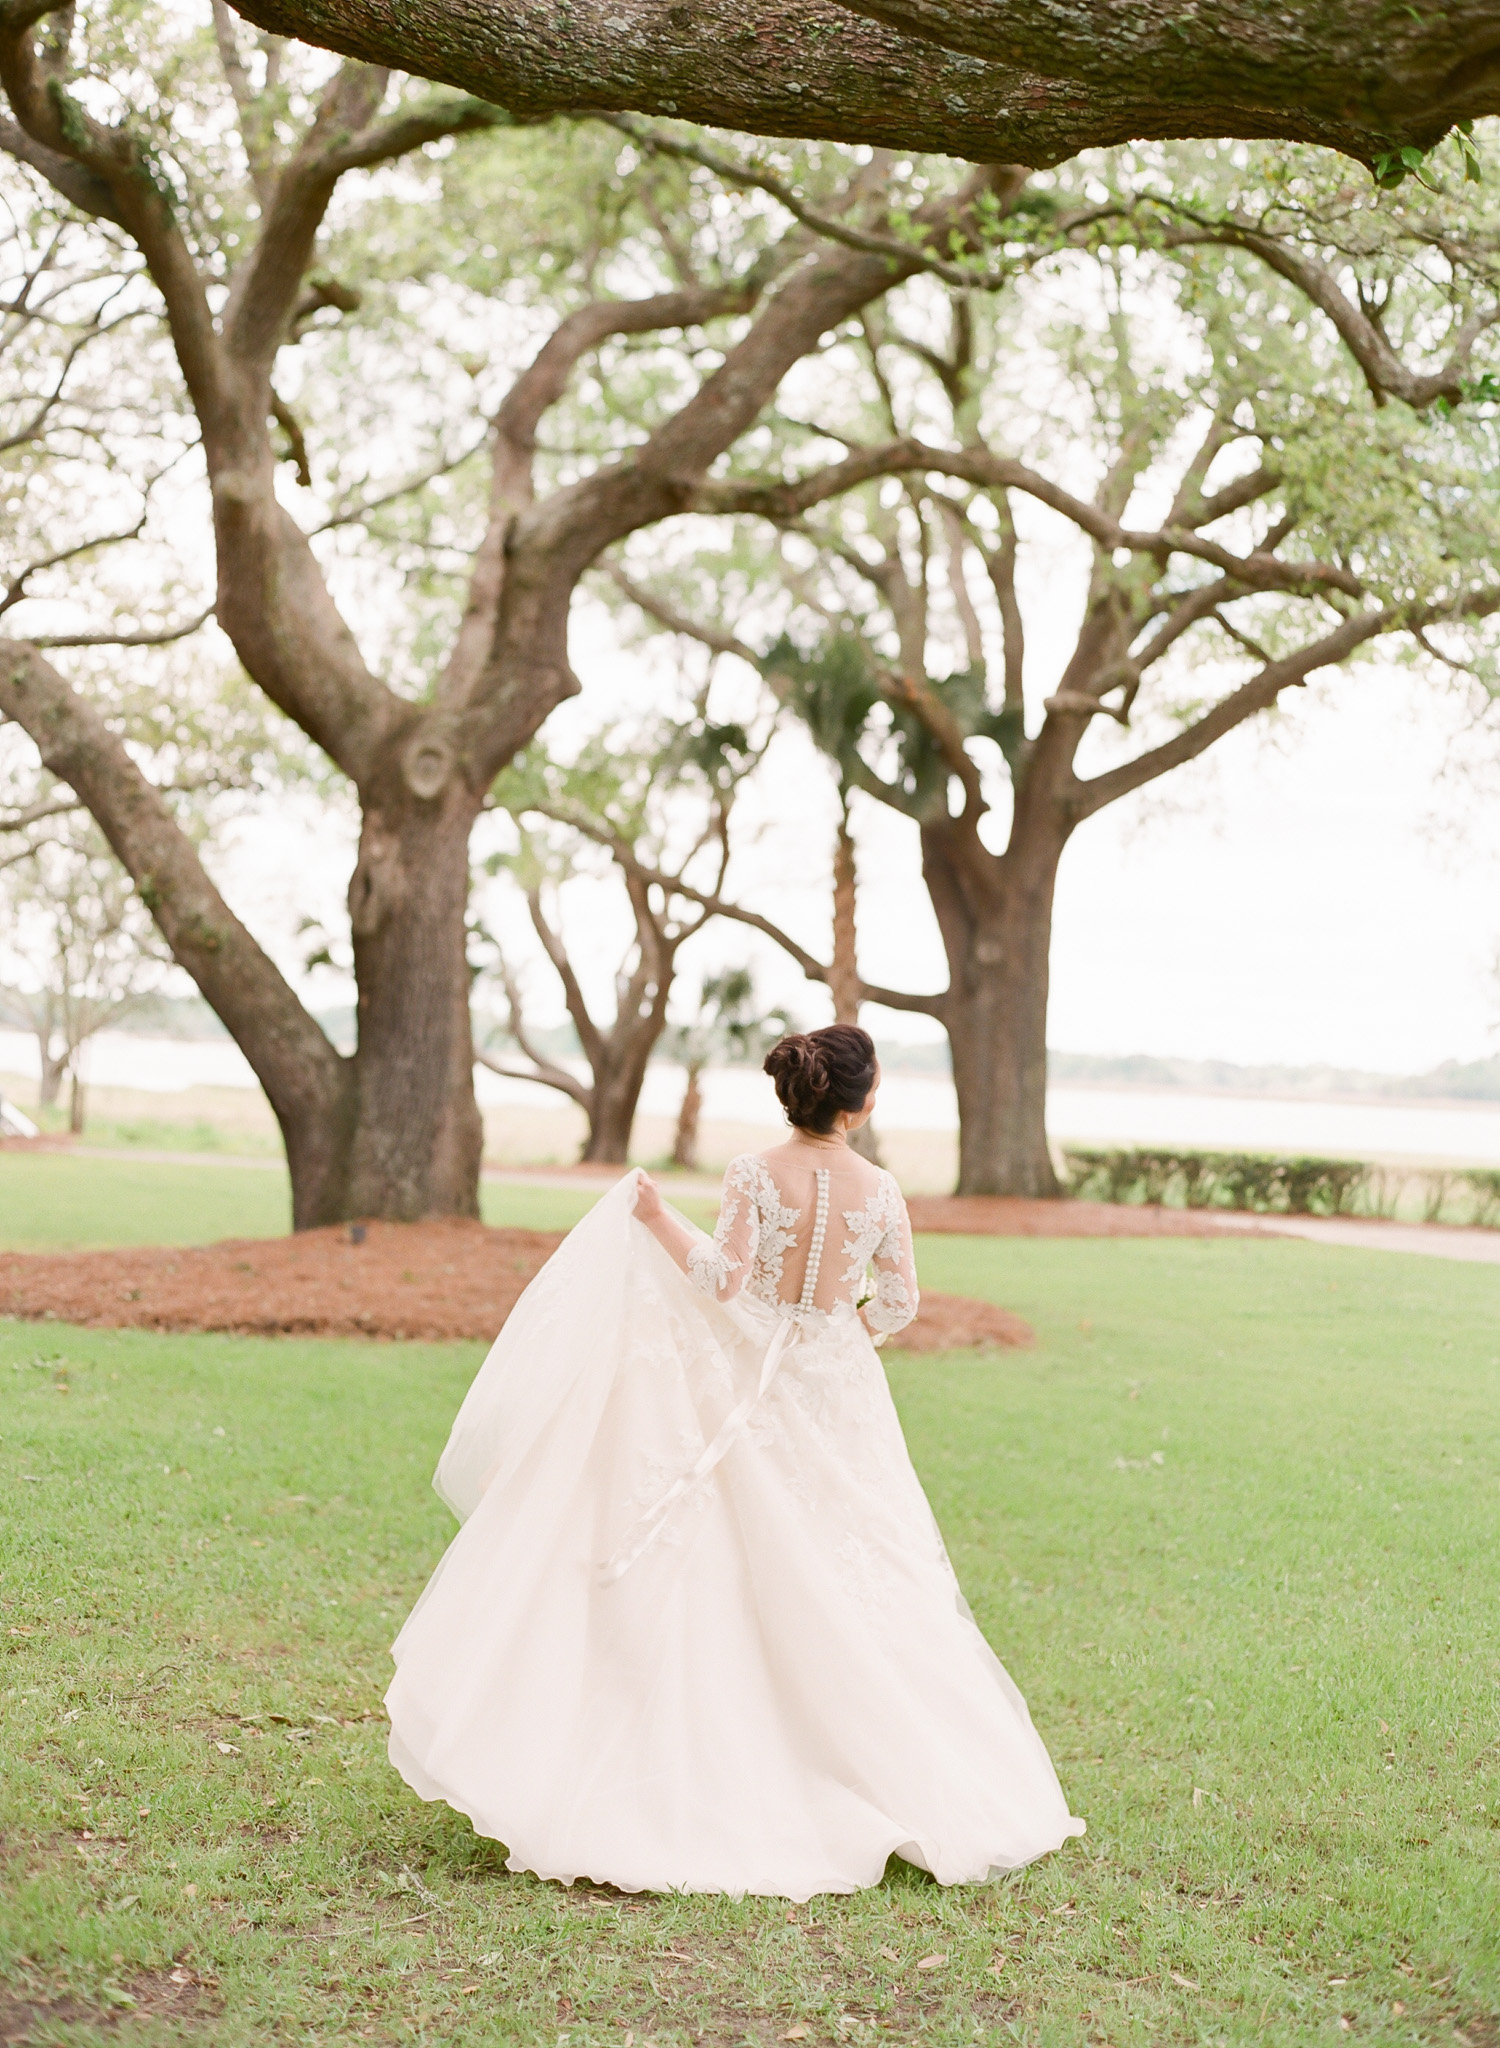 Charleston-Lowndes-Grove-Wedding-PPHG-34.jpg